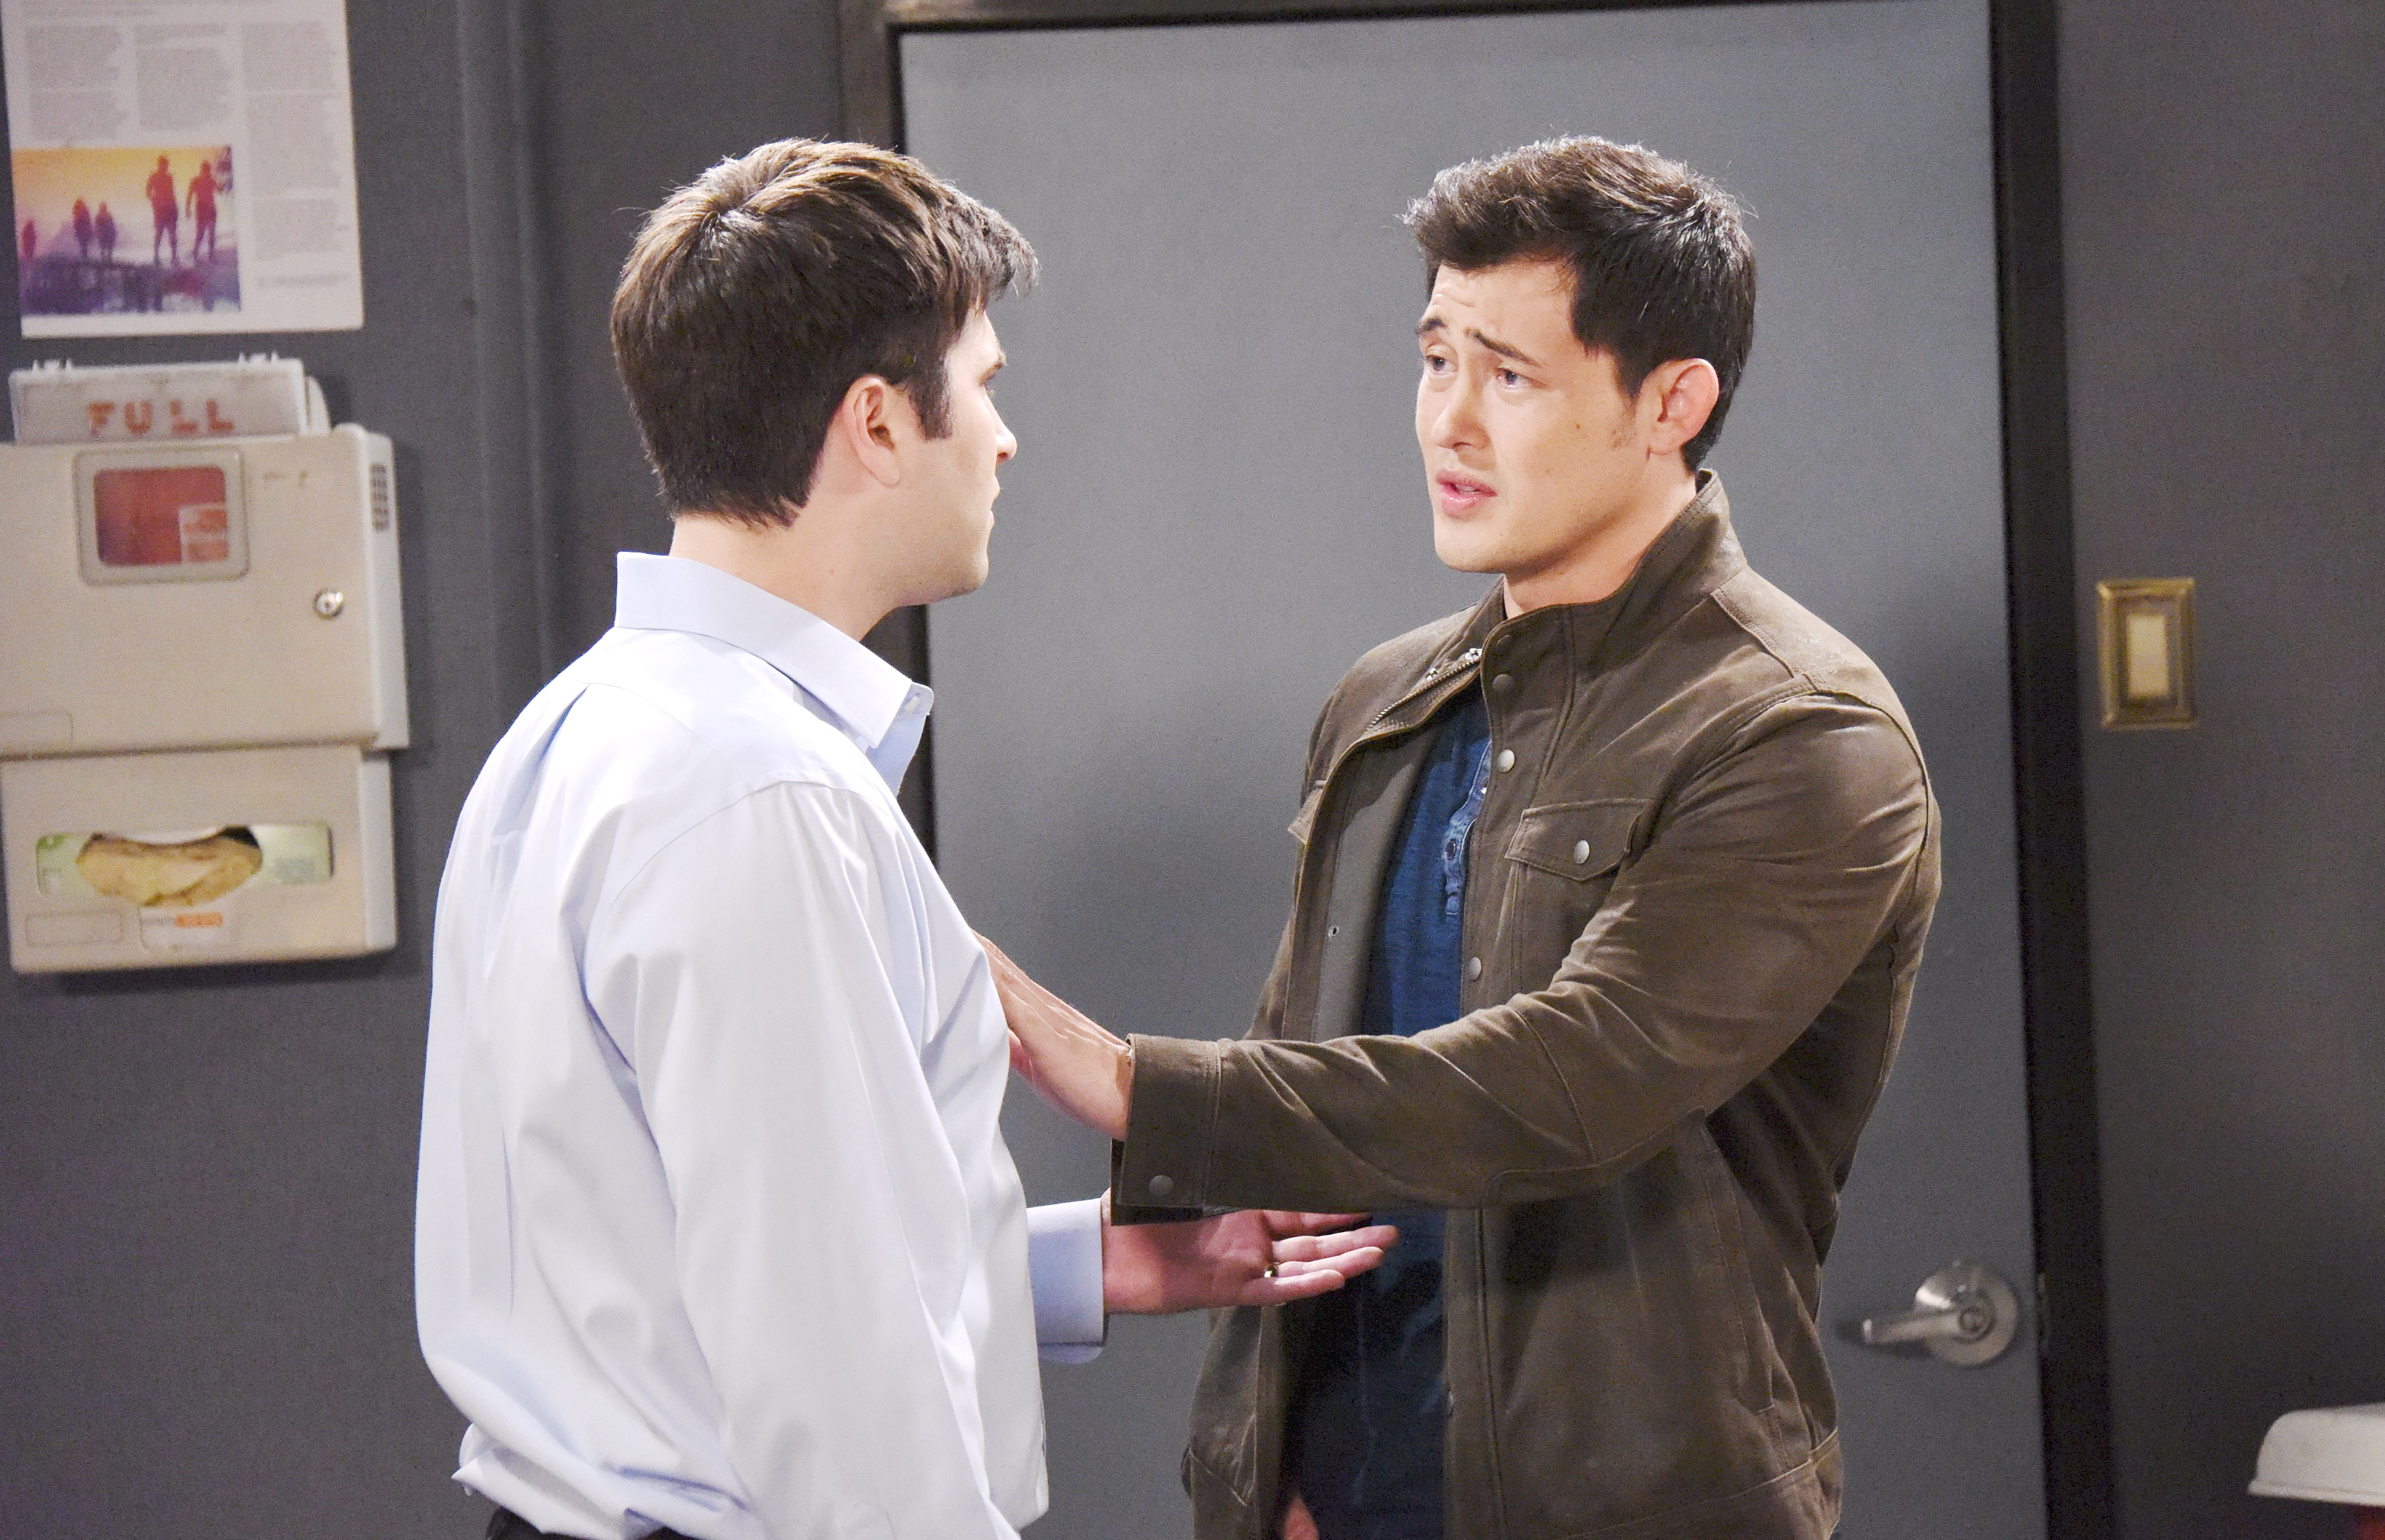 Days Of Our Lives Spoilers: Sonny makes his decision about whether he wants to be with Paul or Will.